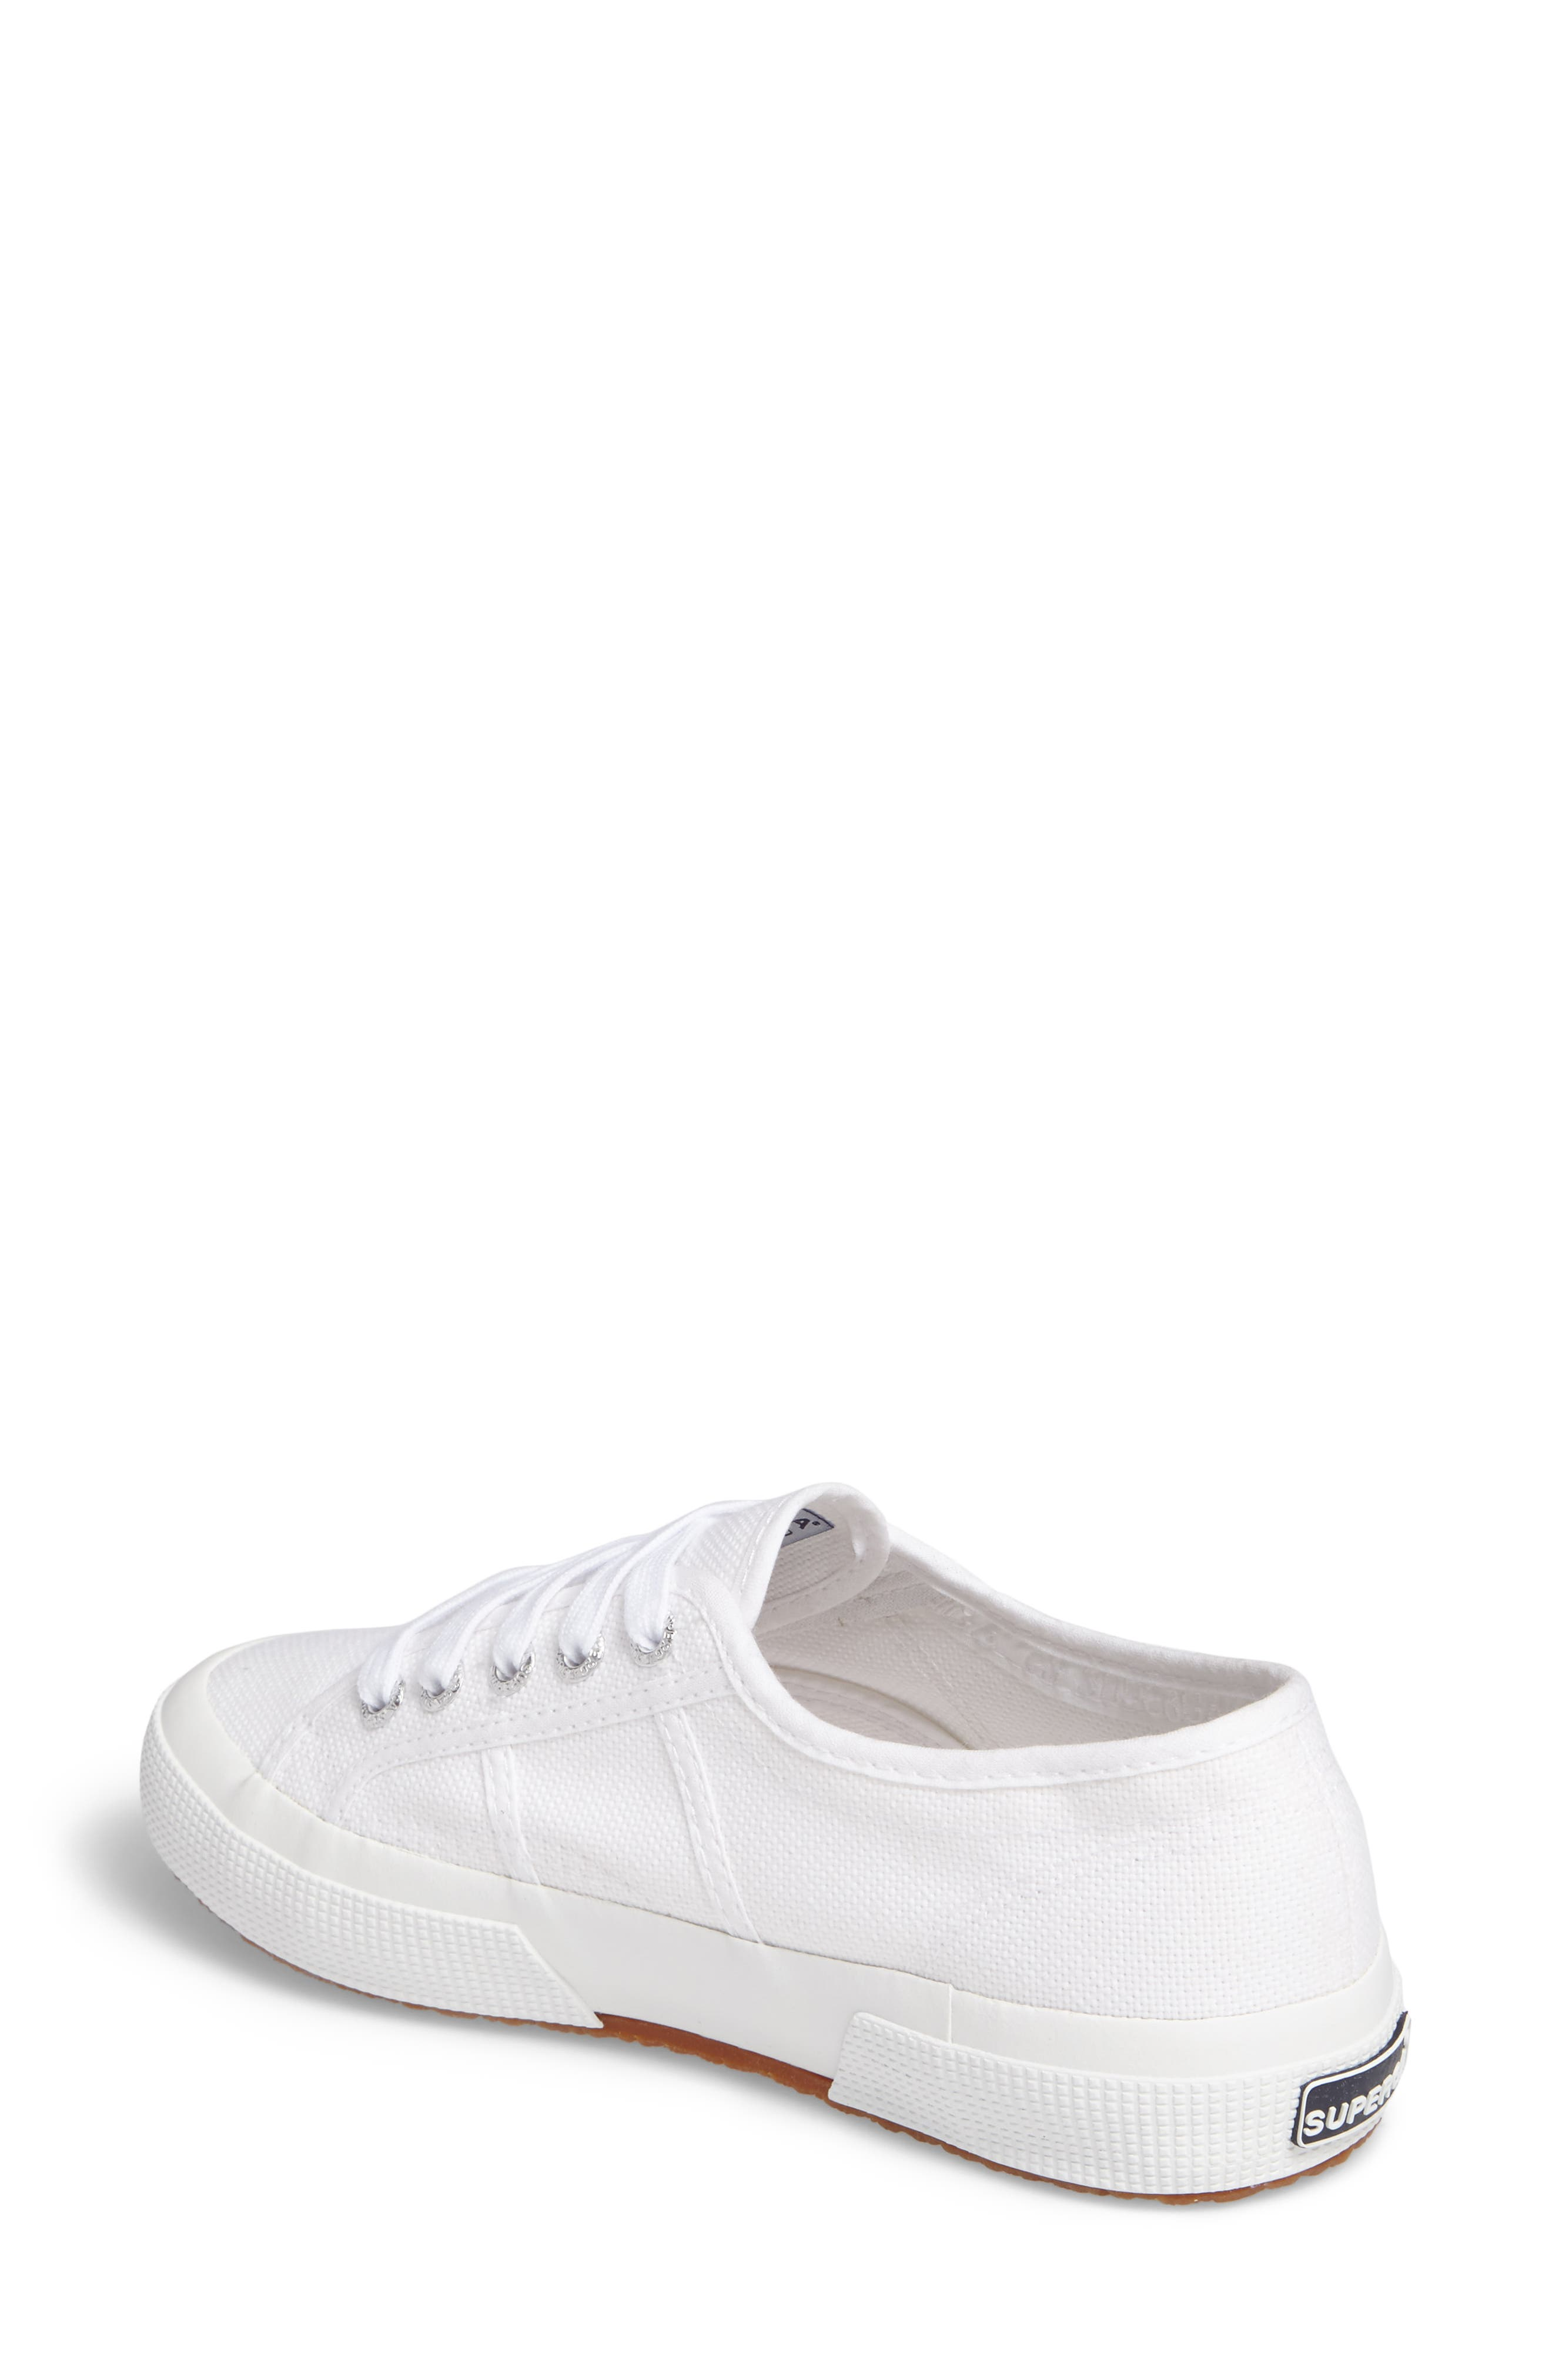 d9261fef5354 Women s White Sneakers   Running Shoes